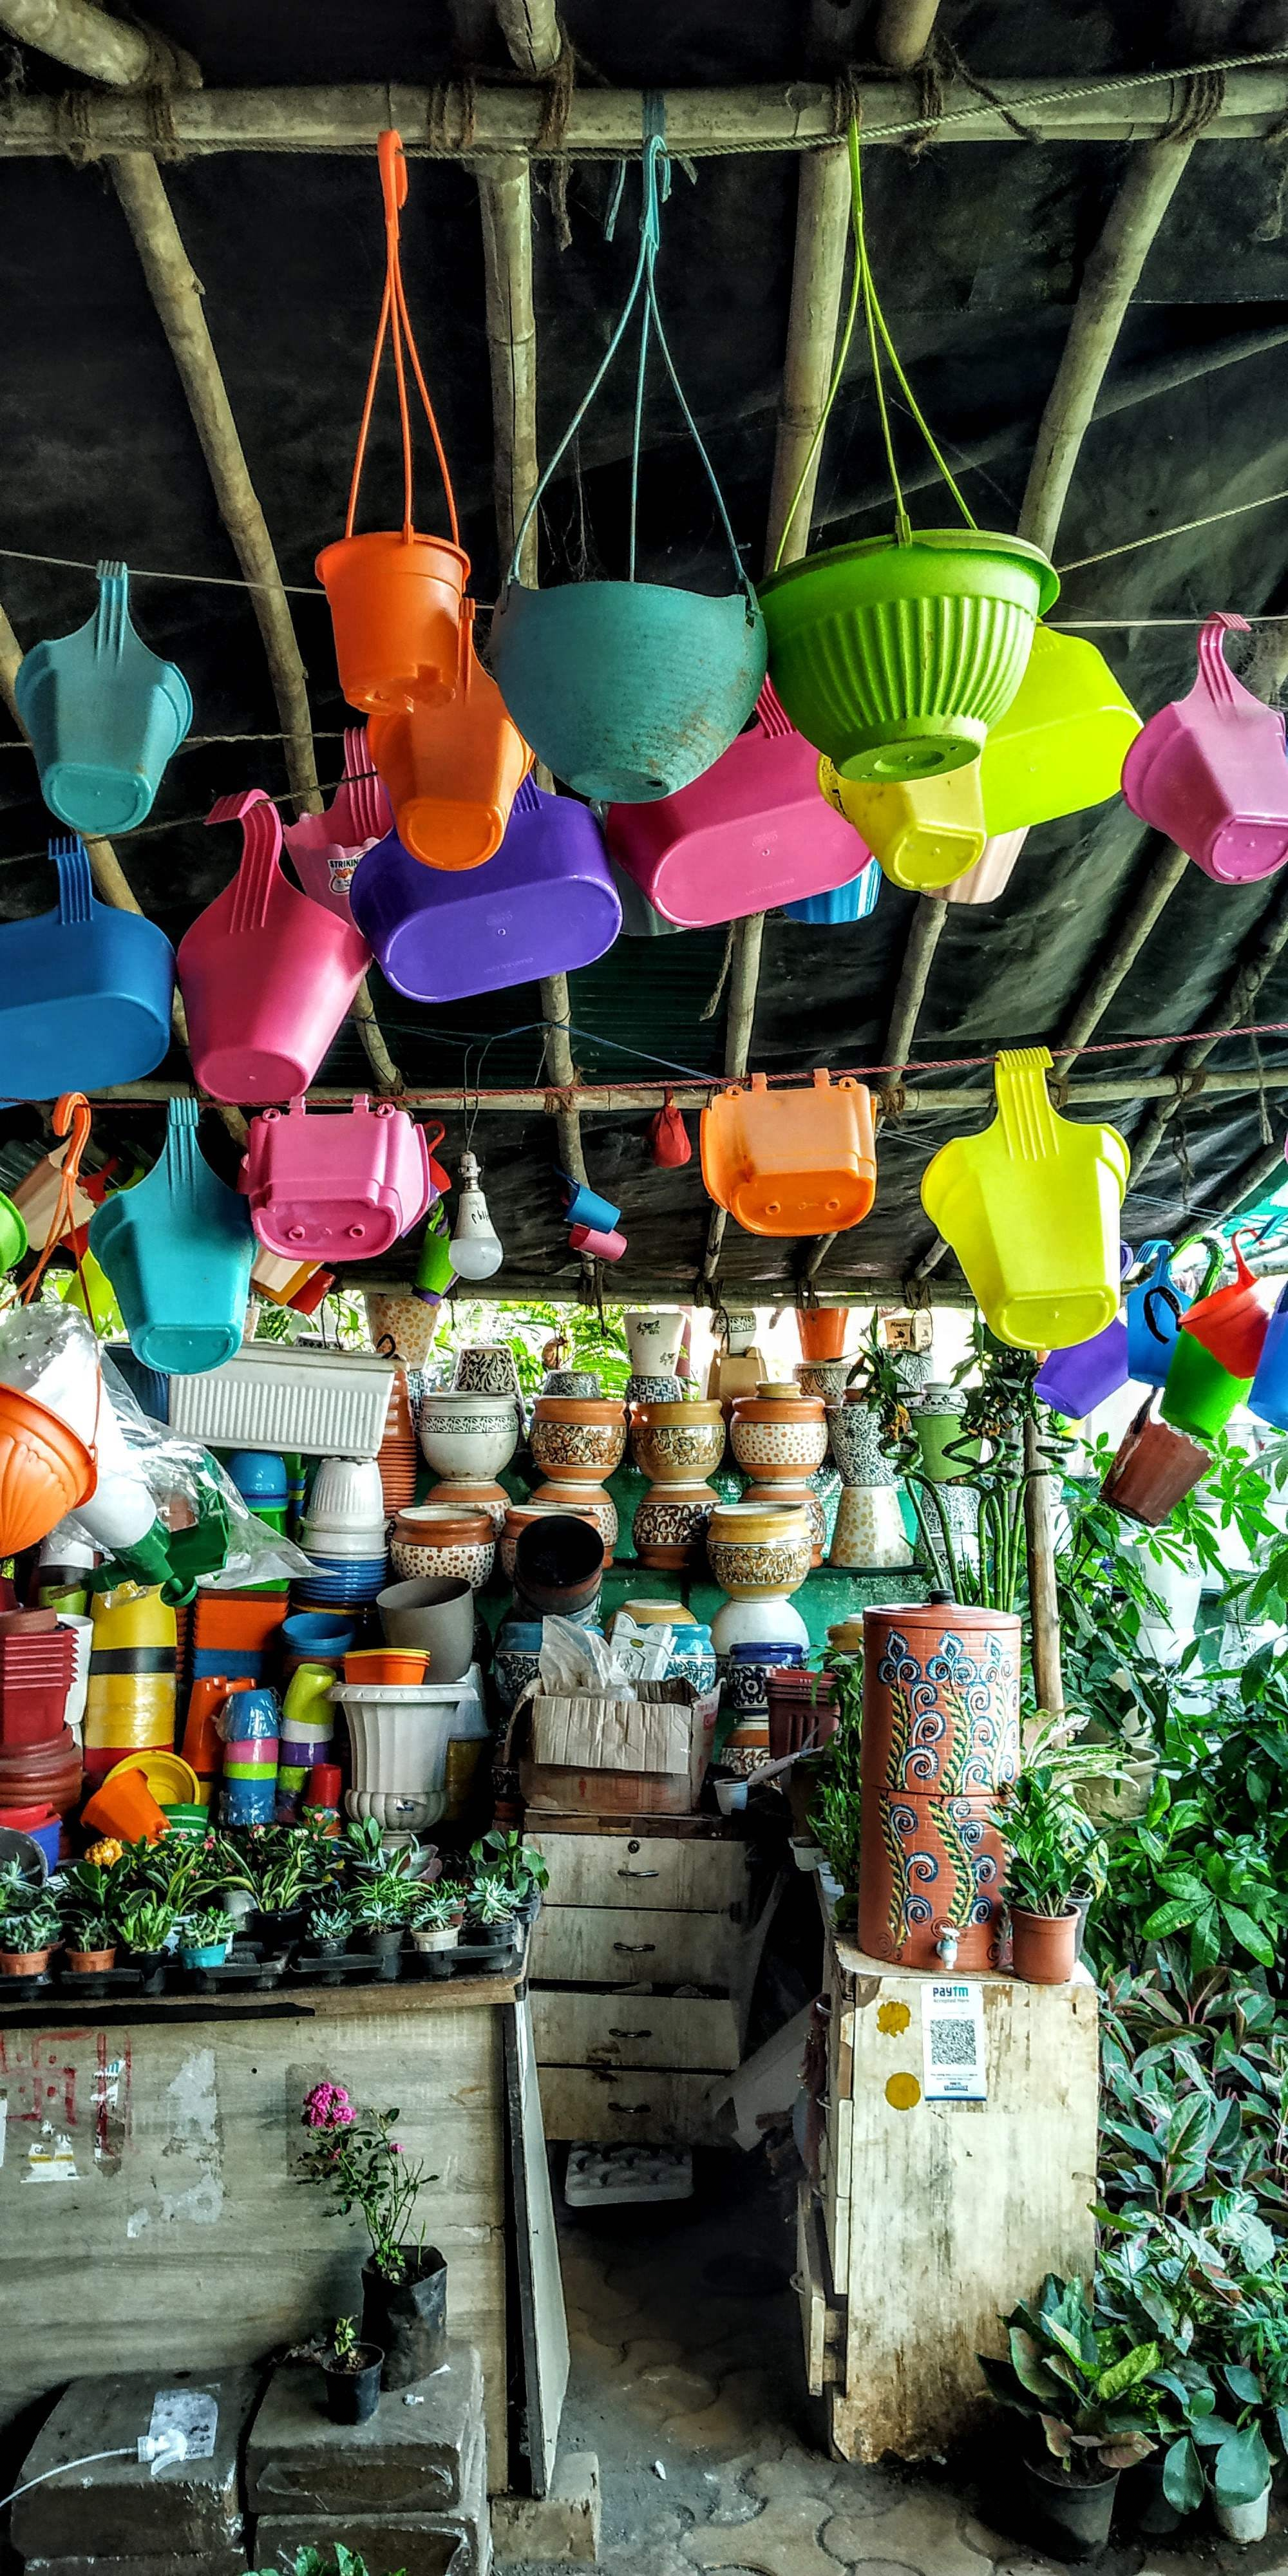 Mukesh Nursery: A Complete Plant Seller & Garden Contractor For Your Home Decor